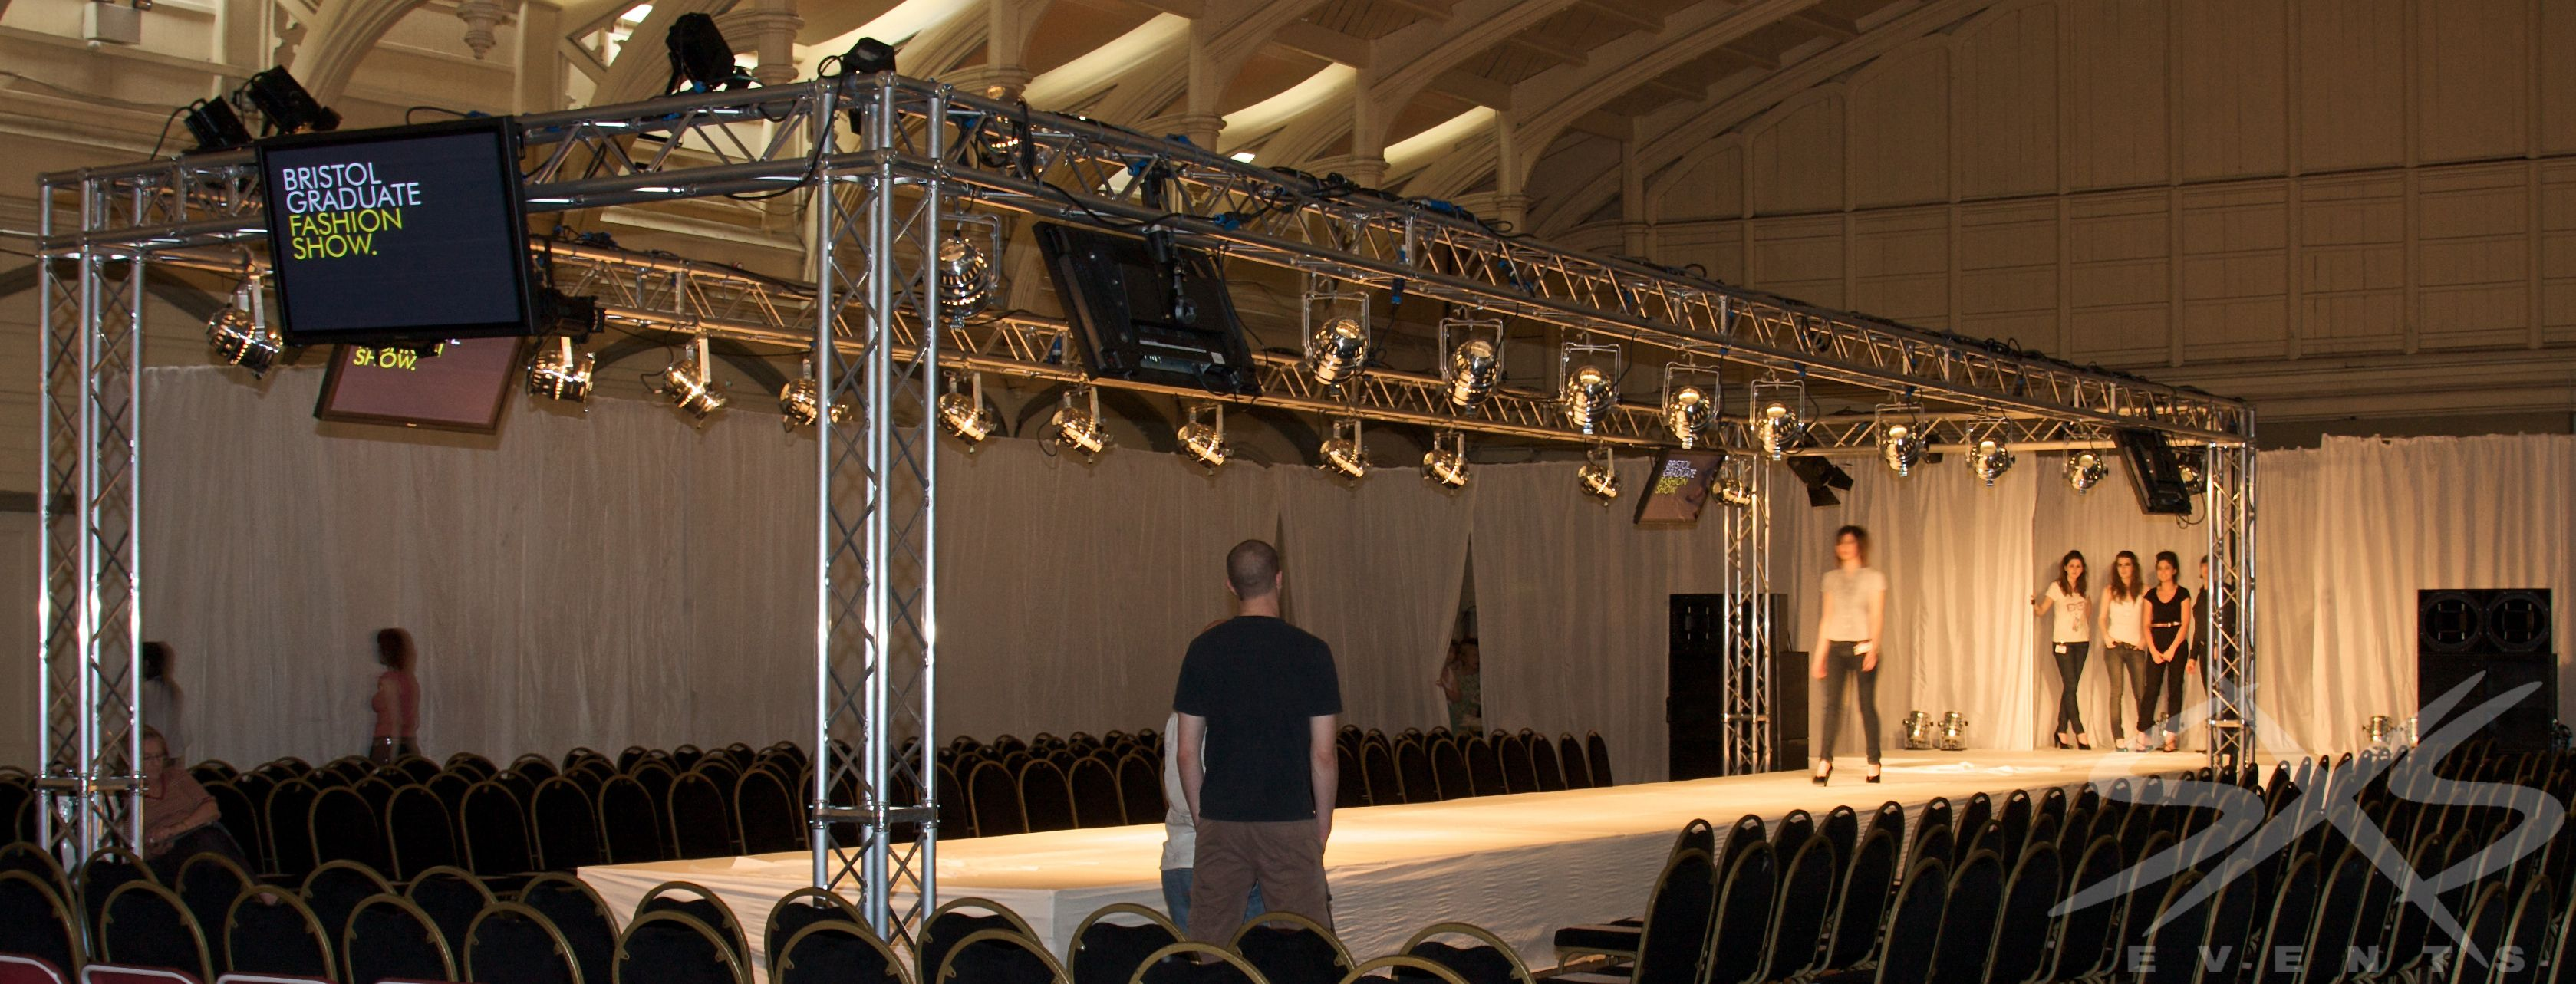 Fashion show catwalk and lighting rig on ground support